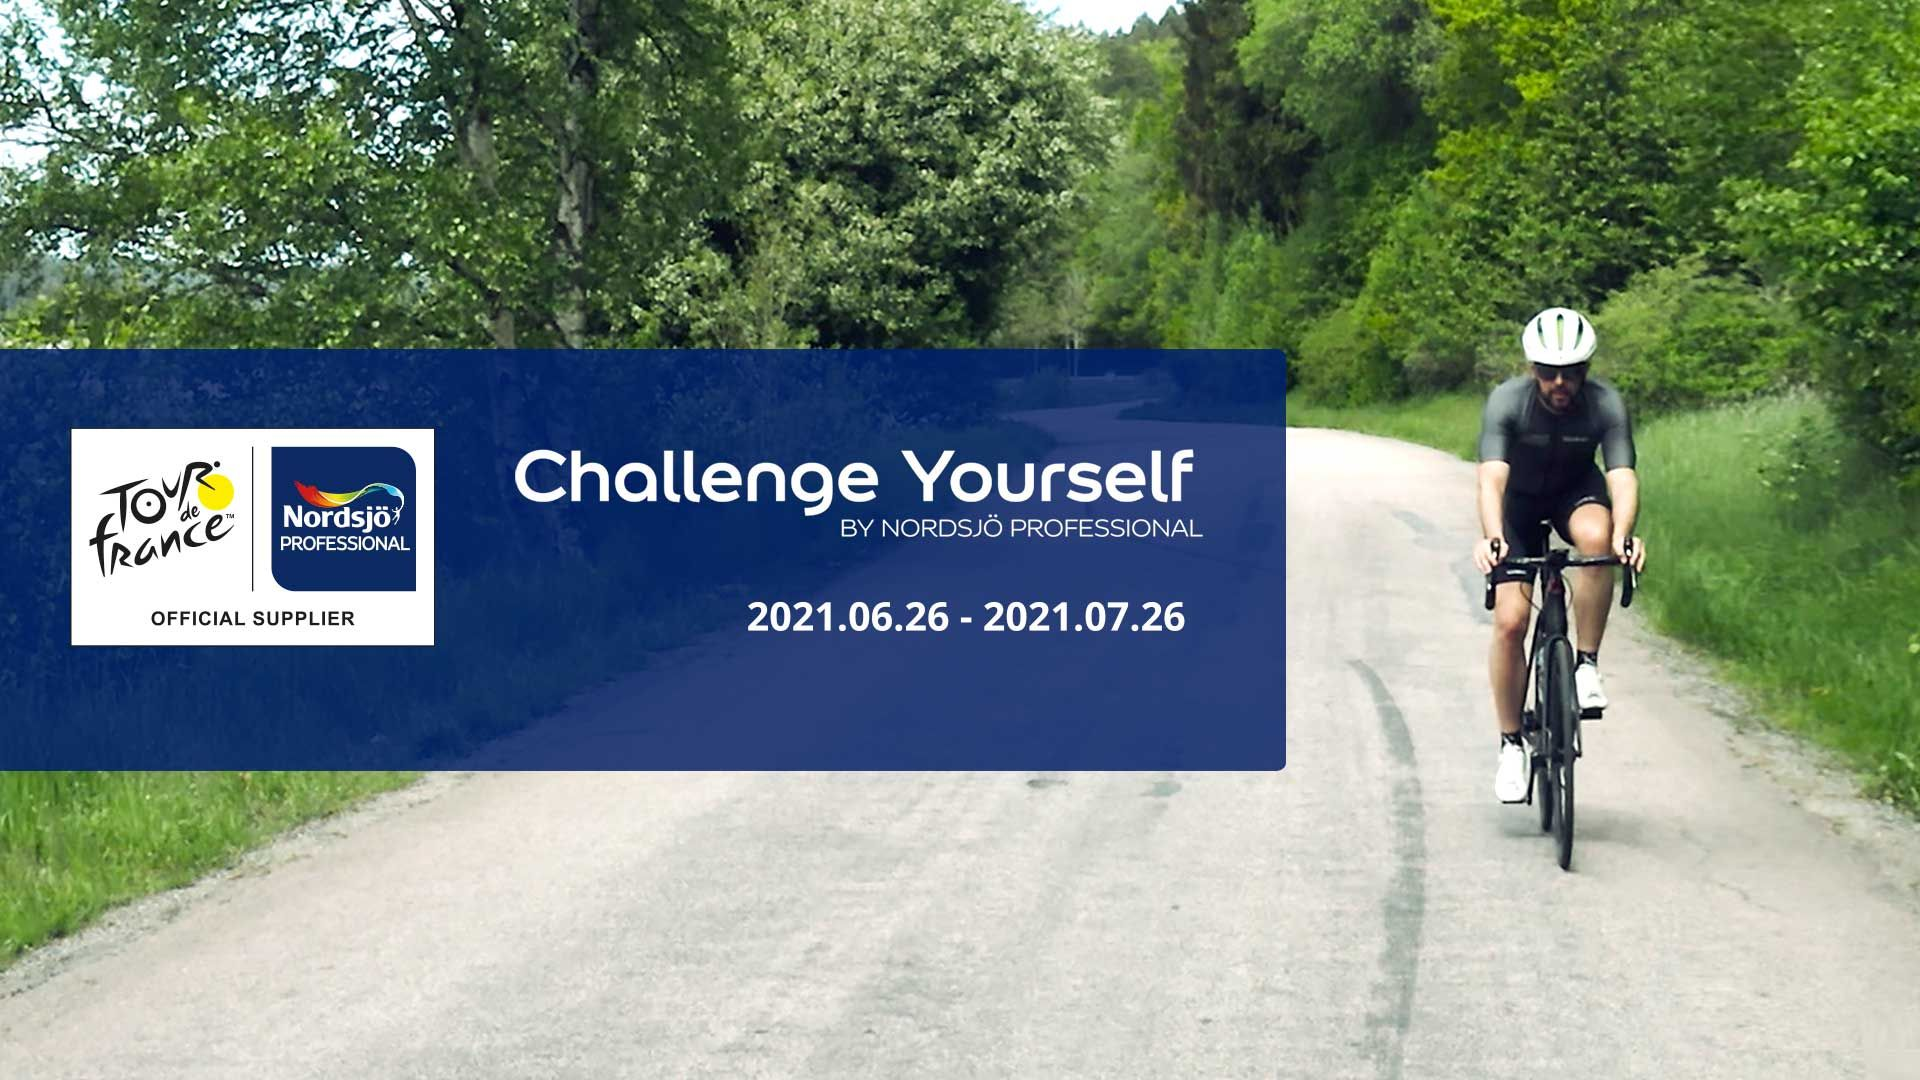 Challenge yourself by Nordsjö Professional